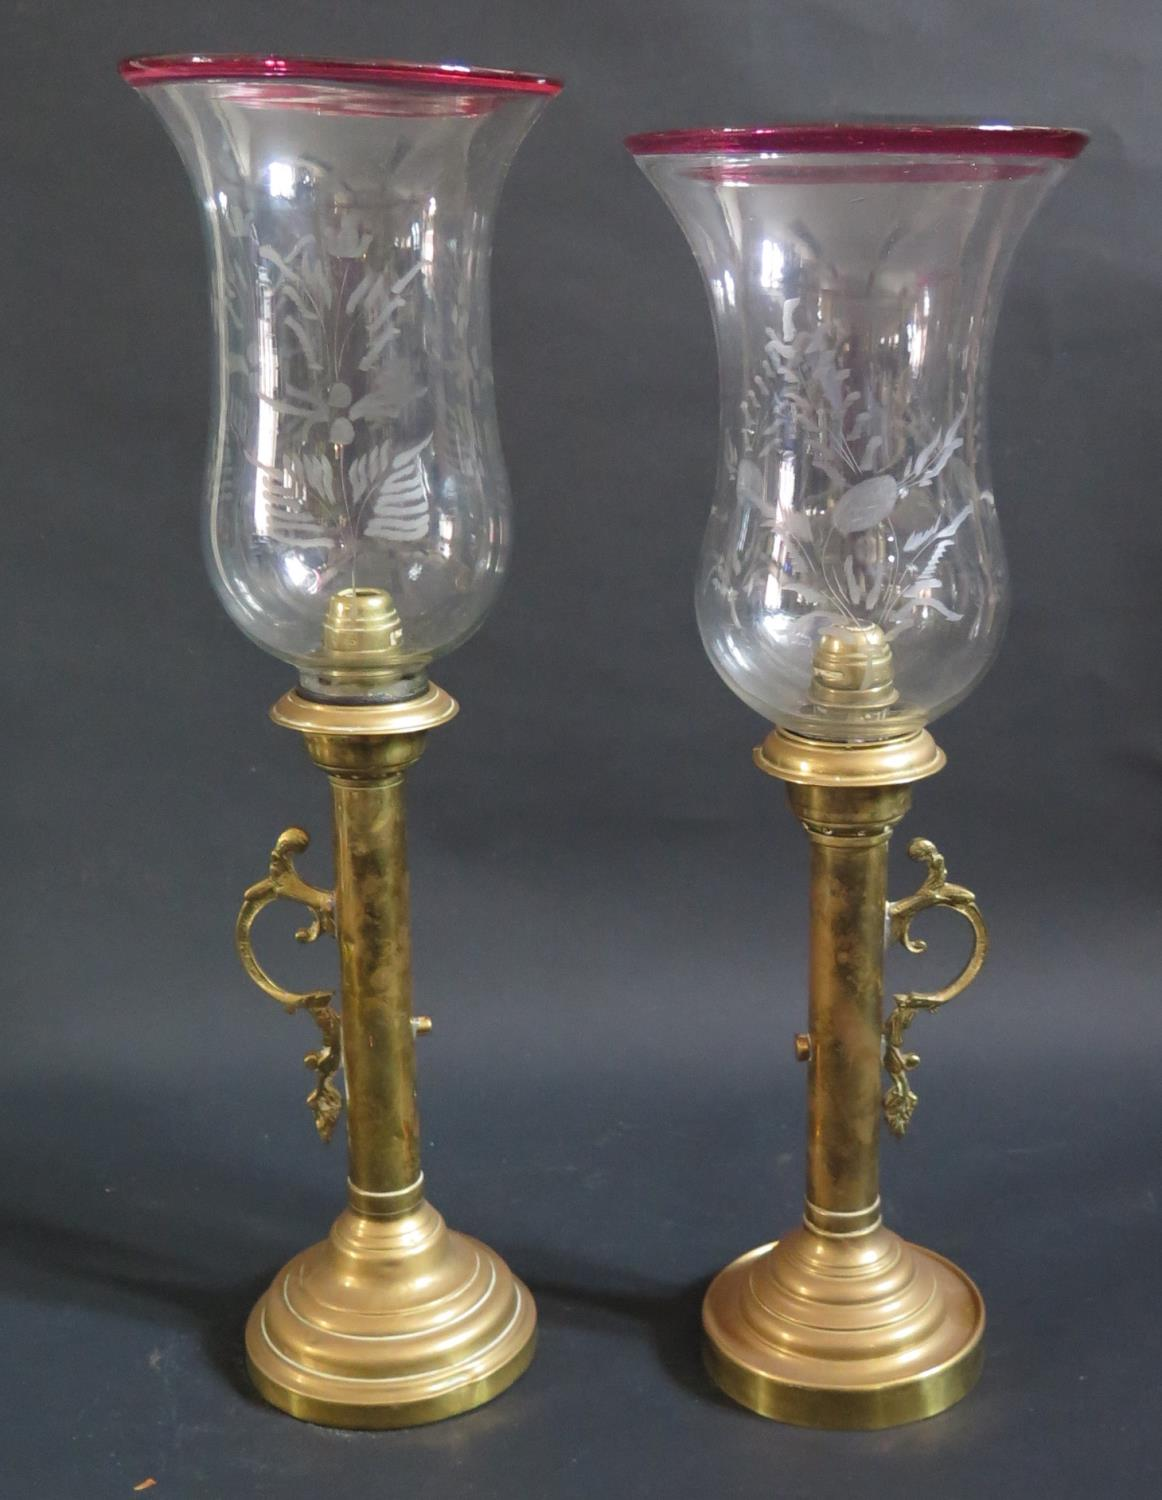 Lot 748 - A Pair of 19th Century Brass Lamps with glass shades